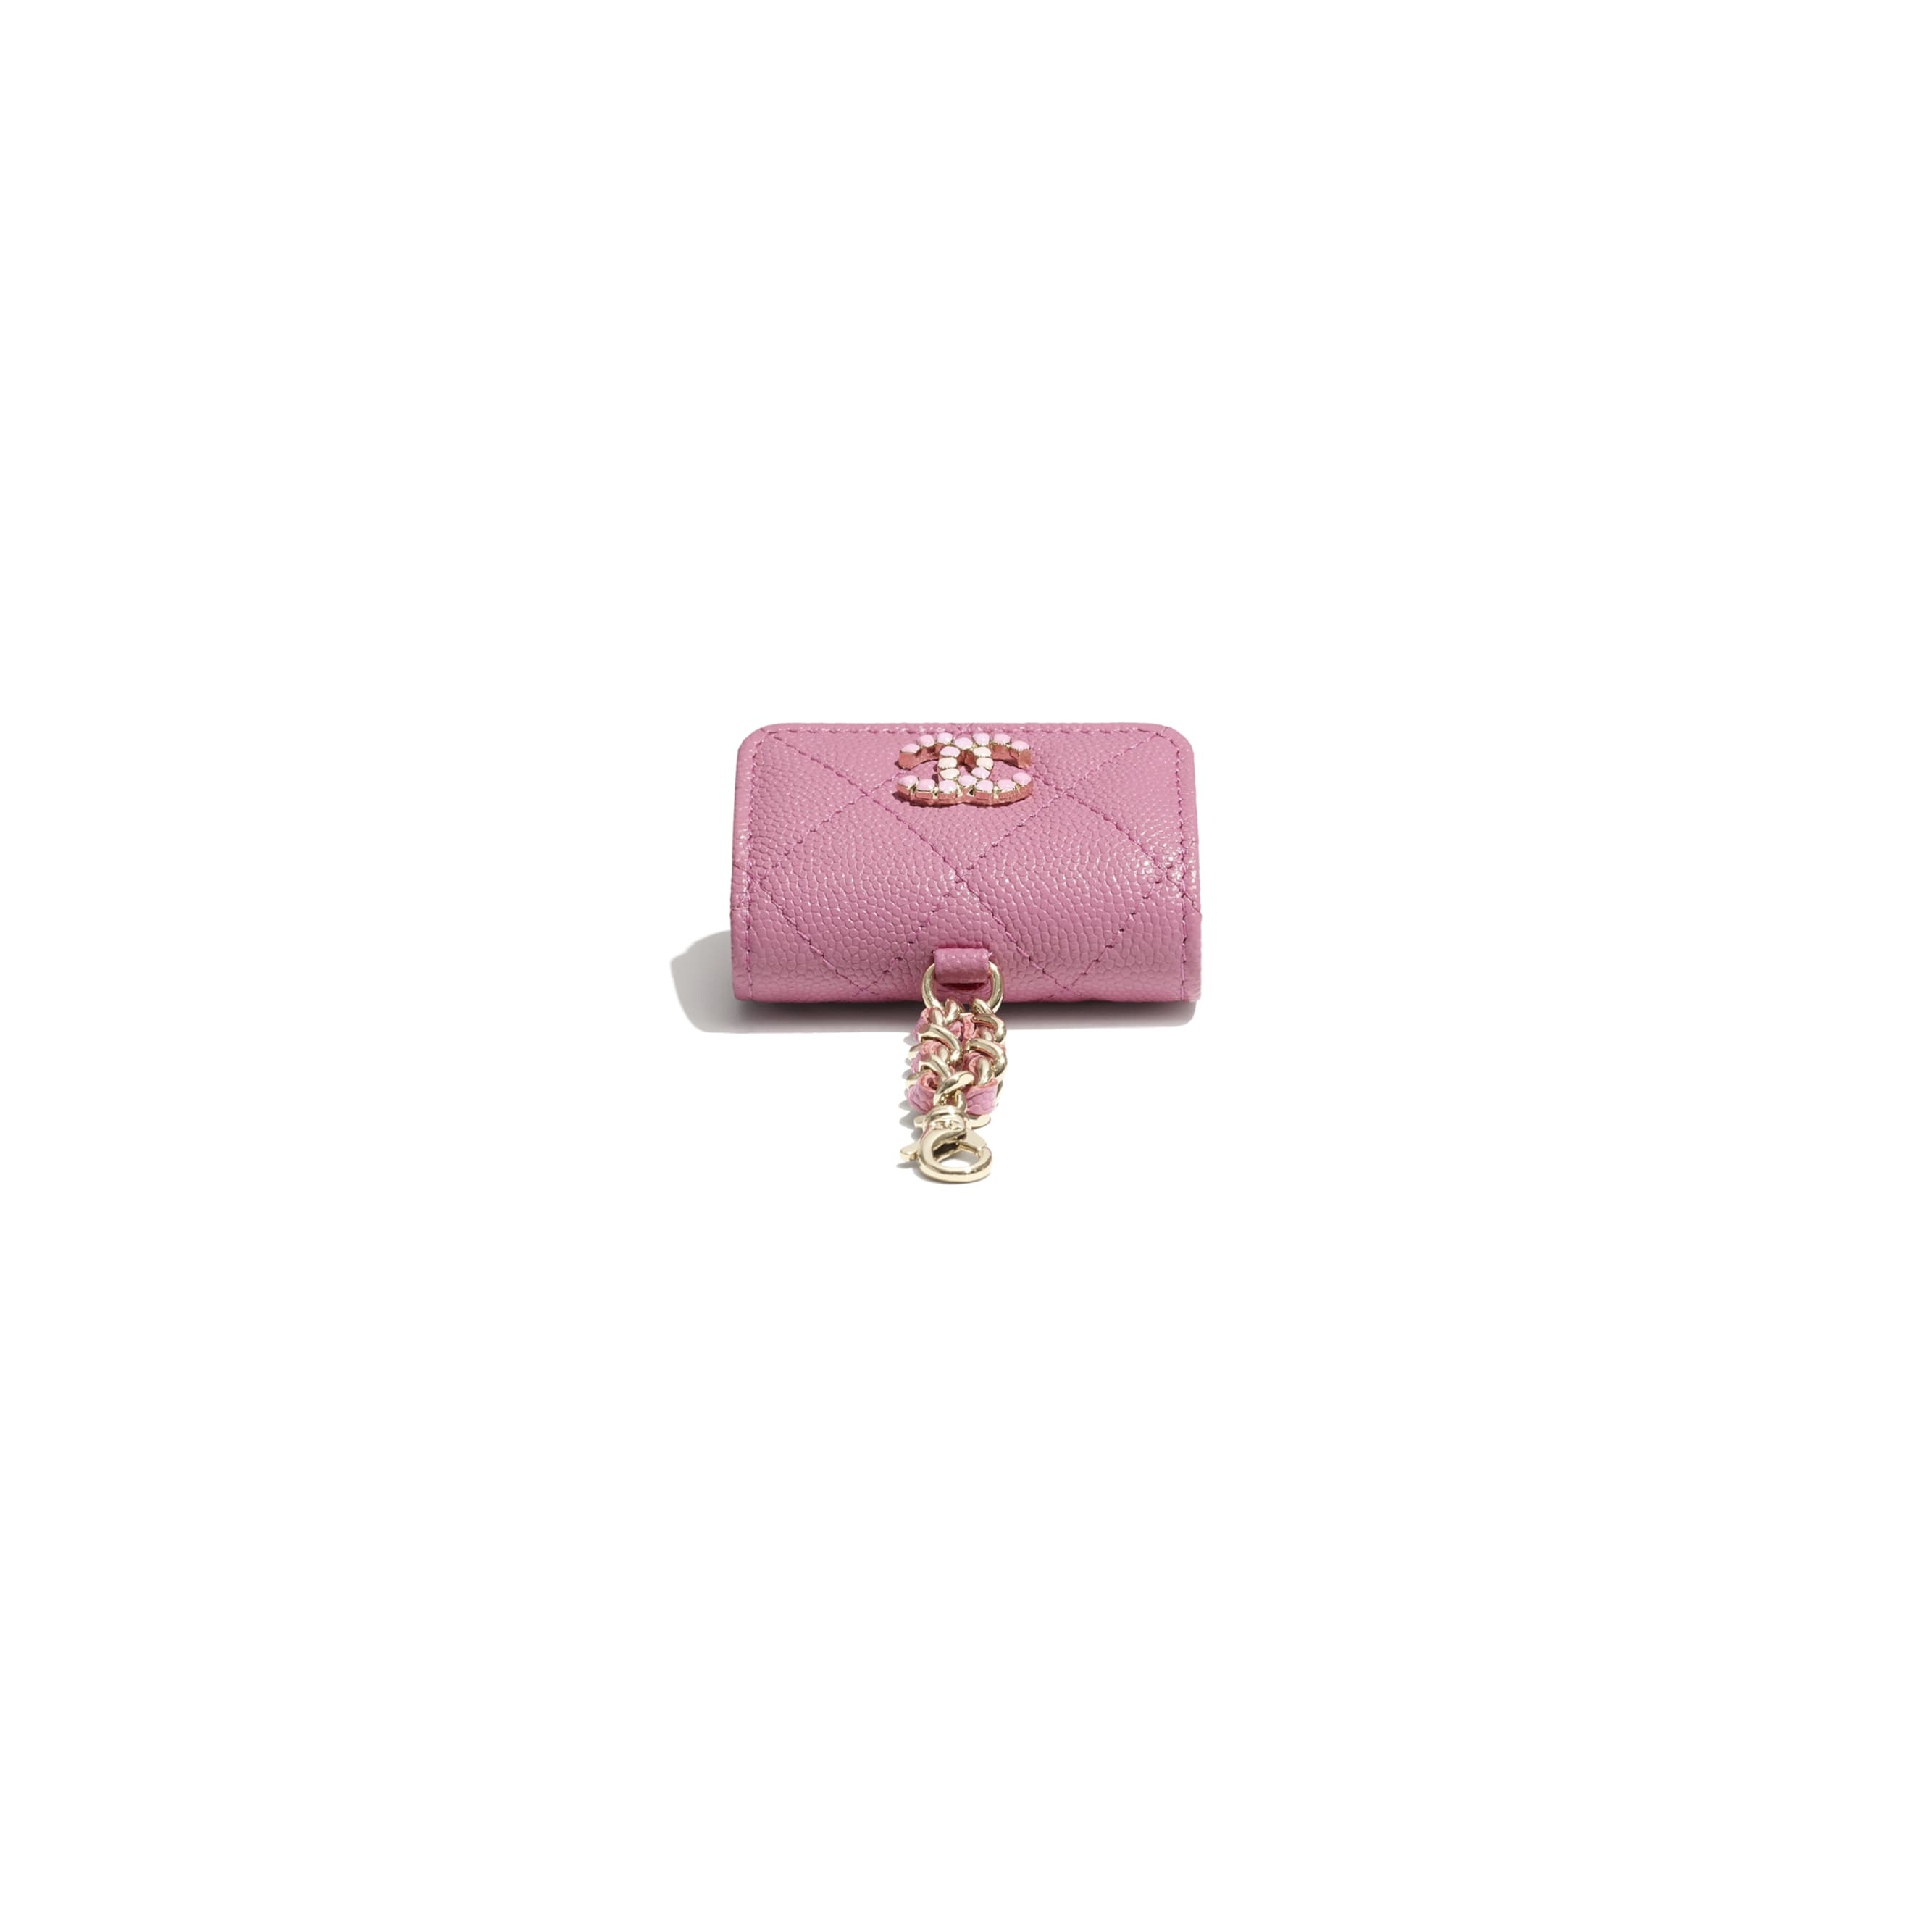 AirPods Pro Case - Pink - Grained Calfskin & Laquered Gold-Tone Metal - CHANEL - Extra view - see standard sized version